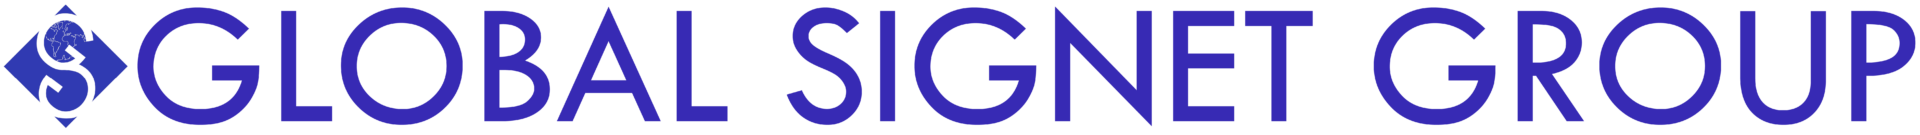 Global Signet Group Logo